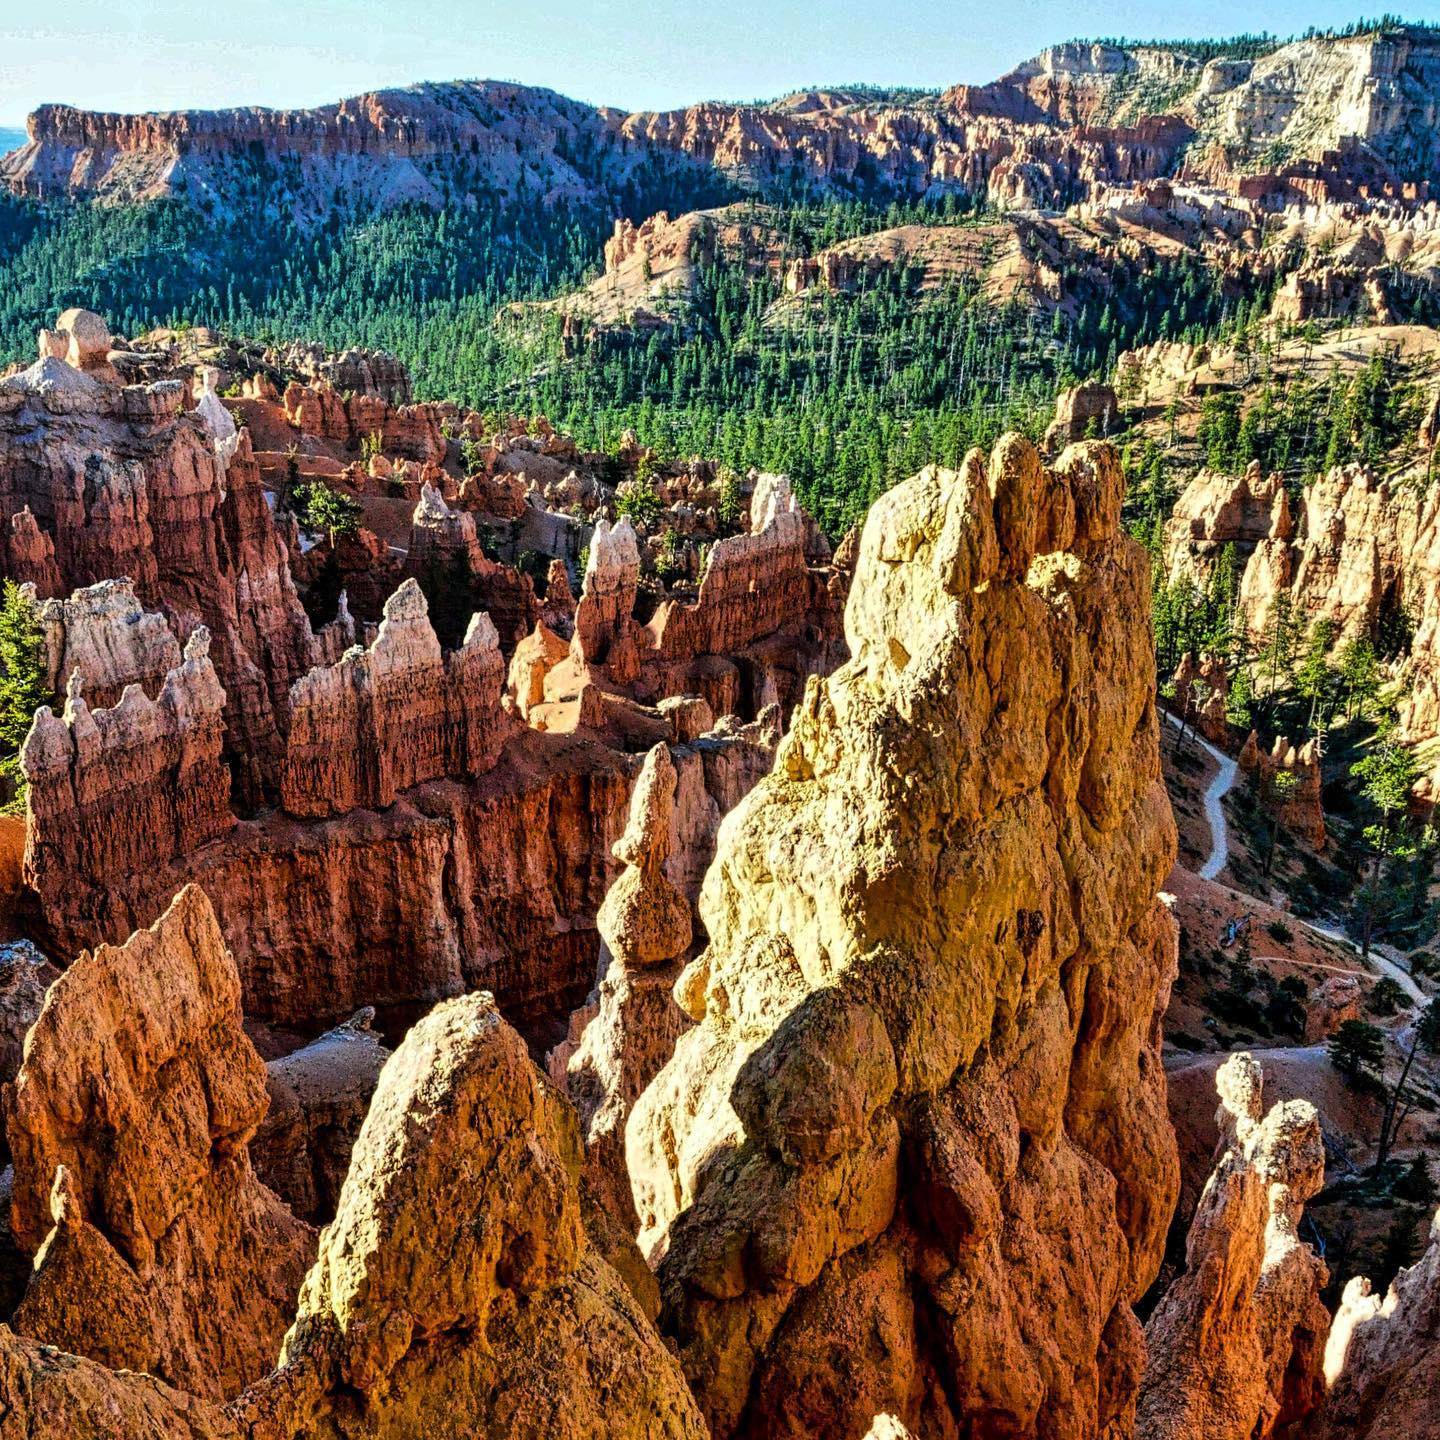 Bryce Canyon, Utah A masterpiece of nature. #usa #usatravel #usatravels #utah #brycecanyonnationalpark #brycecanyon #nature #naturelovers #naturephotography #naturfotografie #nature_perfection #masterpiece #beautifulnature #beautifulplaces #beautifuldestinations #utahunique #uniqueplaces #utahlove #utahgram #travelphotography #travelpics #naturephoto #reisefotografie #reiseblog #travelblog #travelblogger #instatravel #instapic #reiseblogger #naturepics